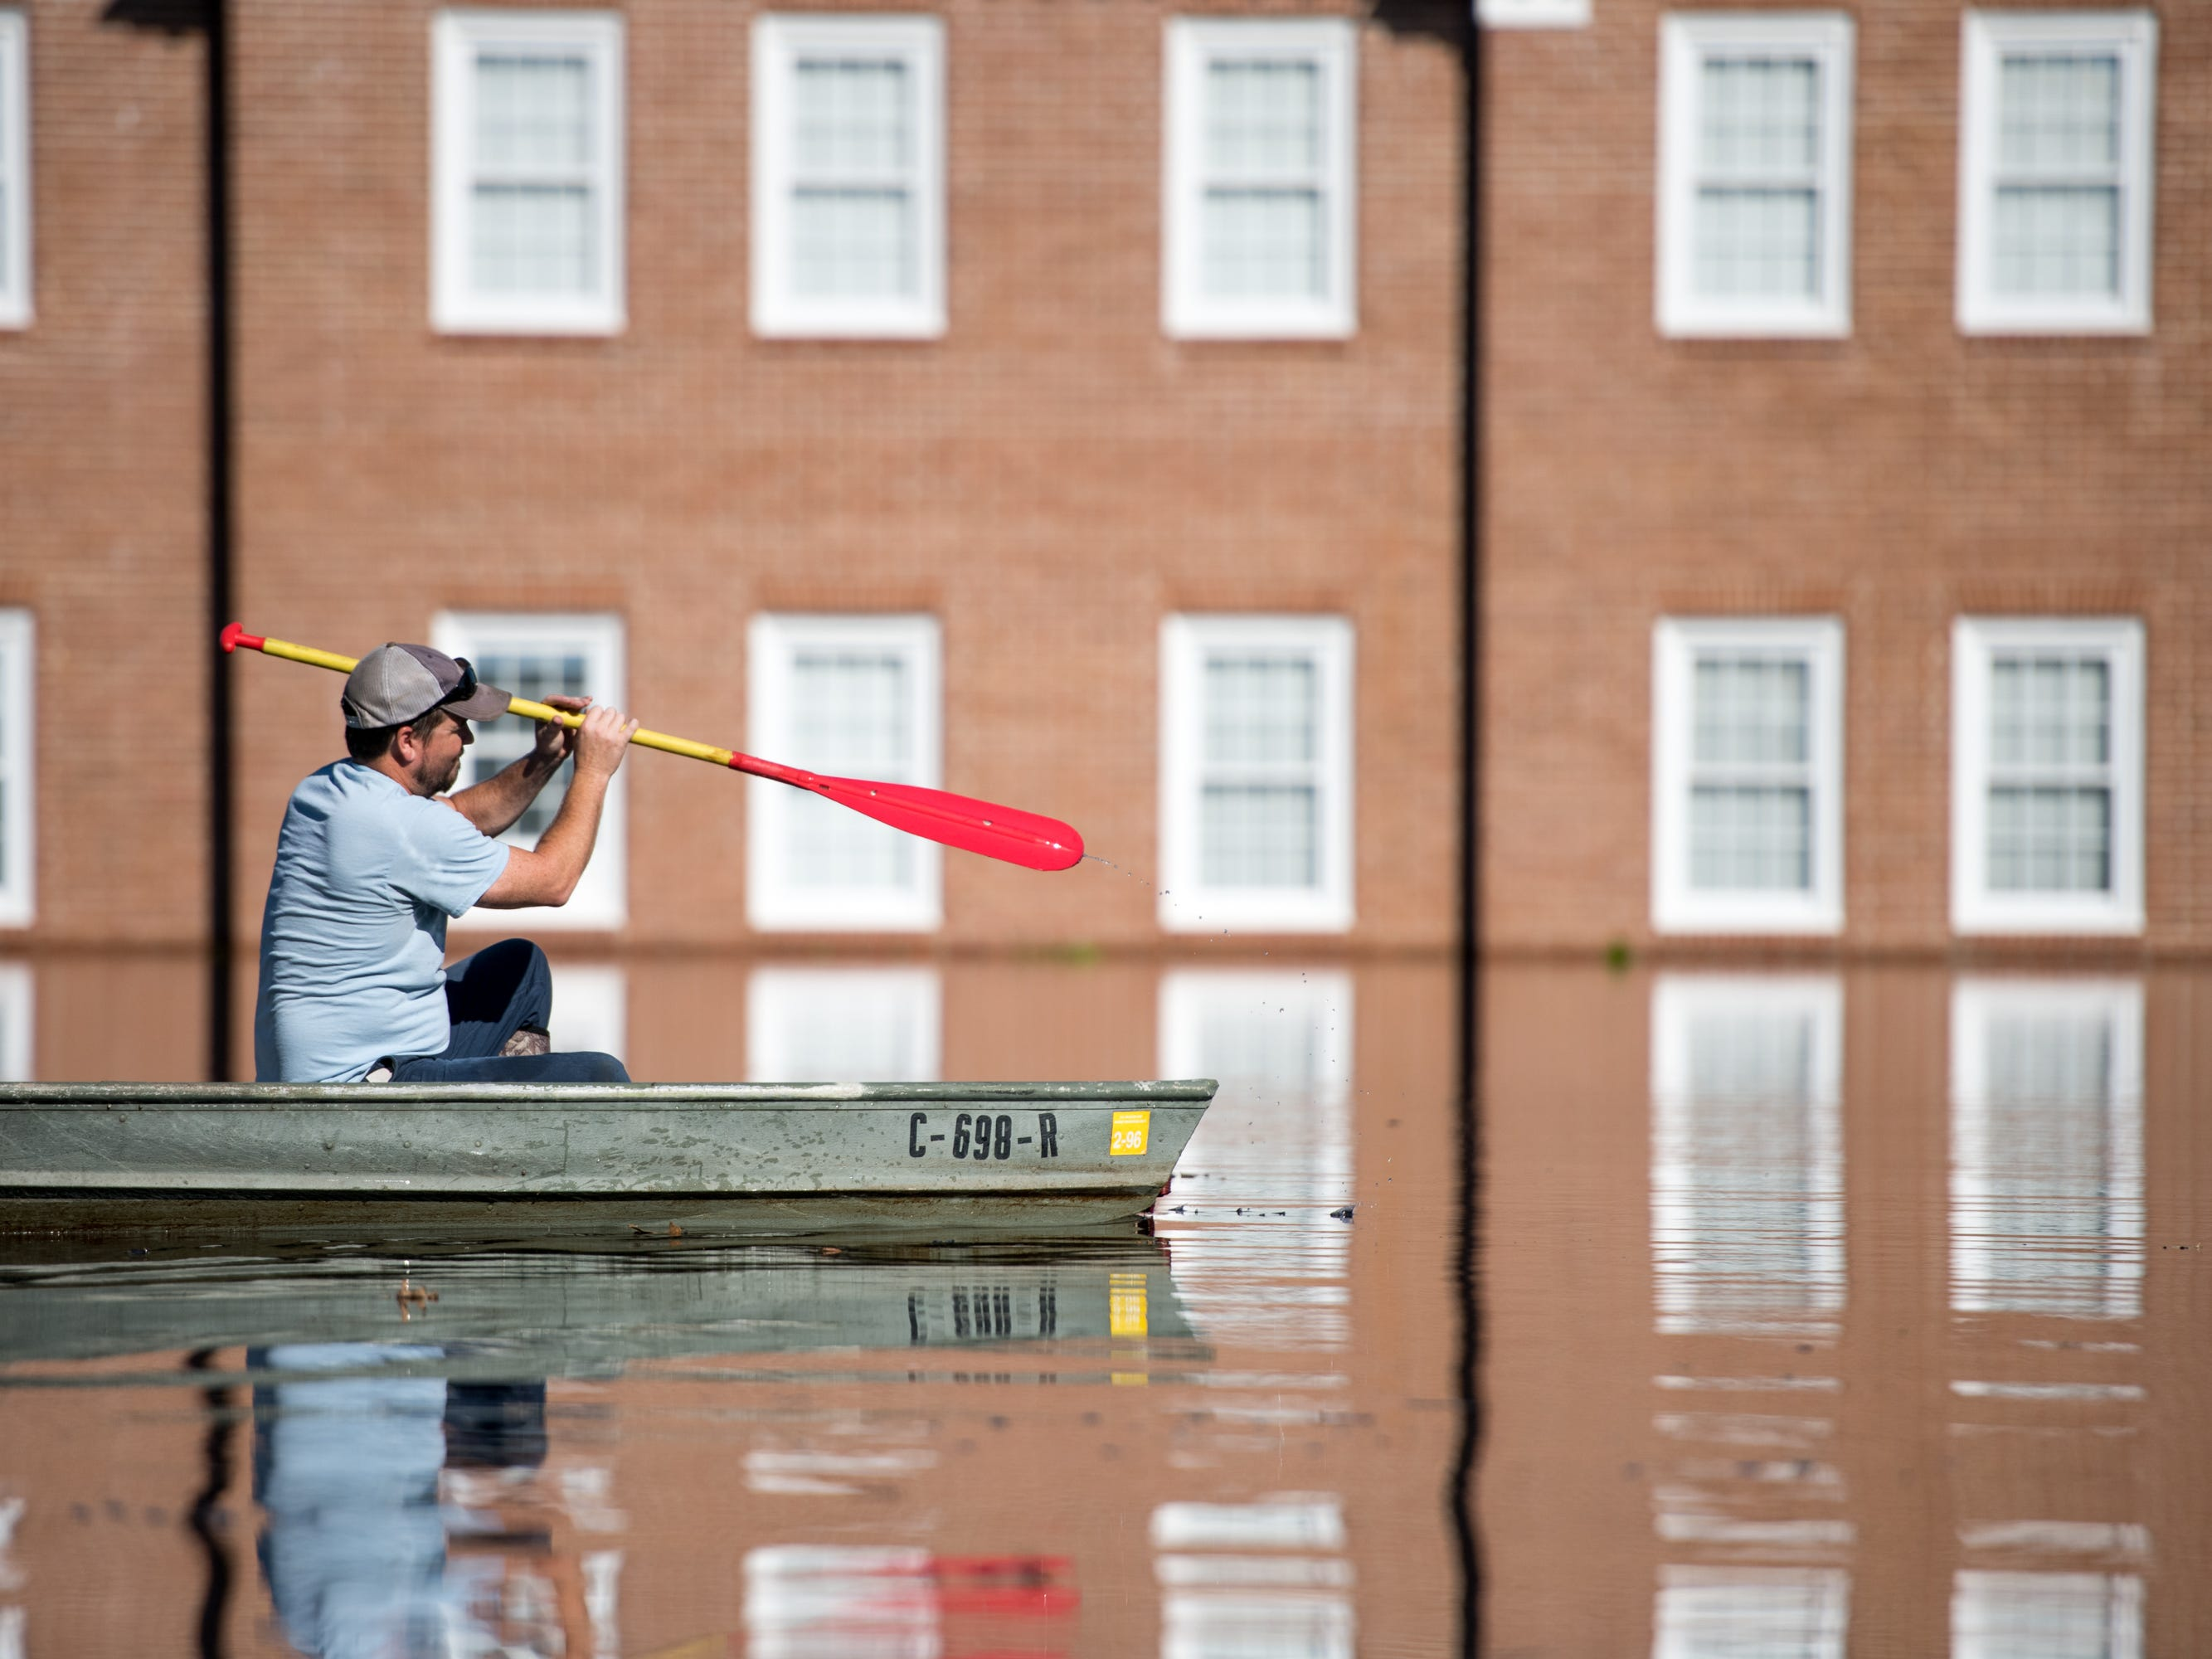 Taylor James paddles a boat in floodwaters caused by Hurricane Florence in front of Trinity United Methodist Church near the Crabtree Swamp on Sept. 26, 2018 in Conway, S.C.